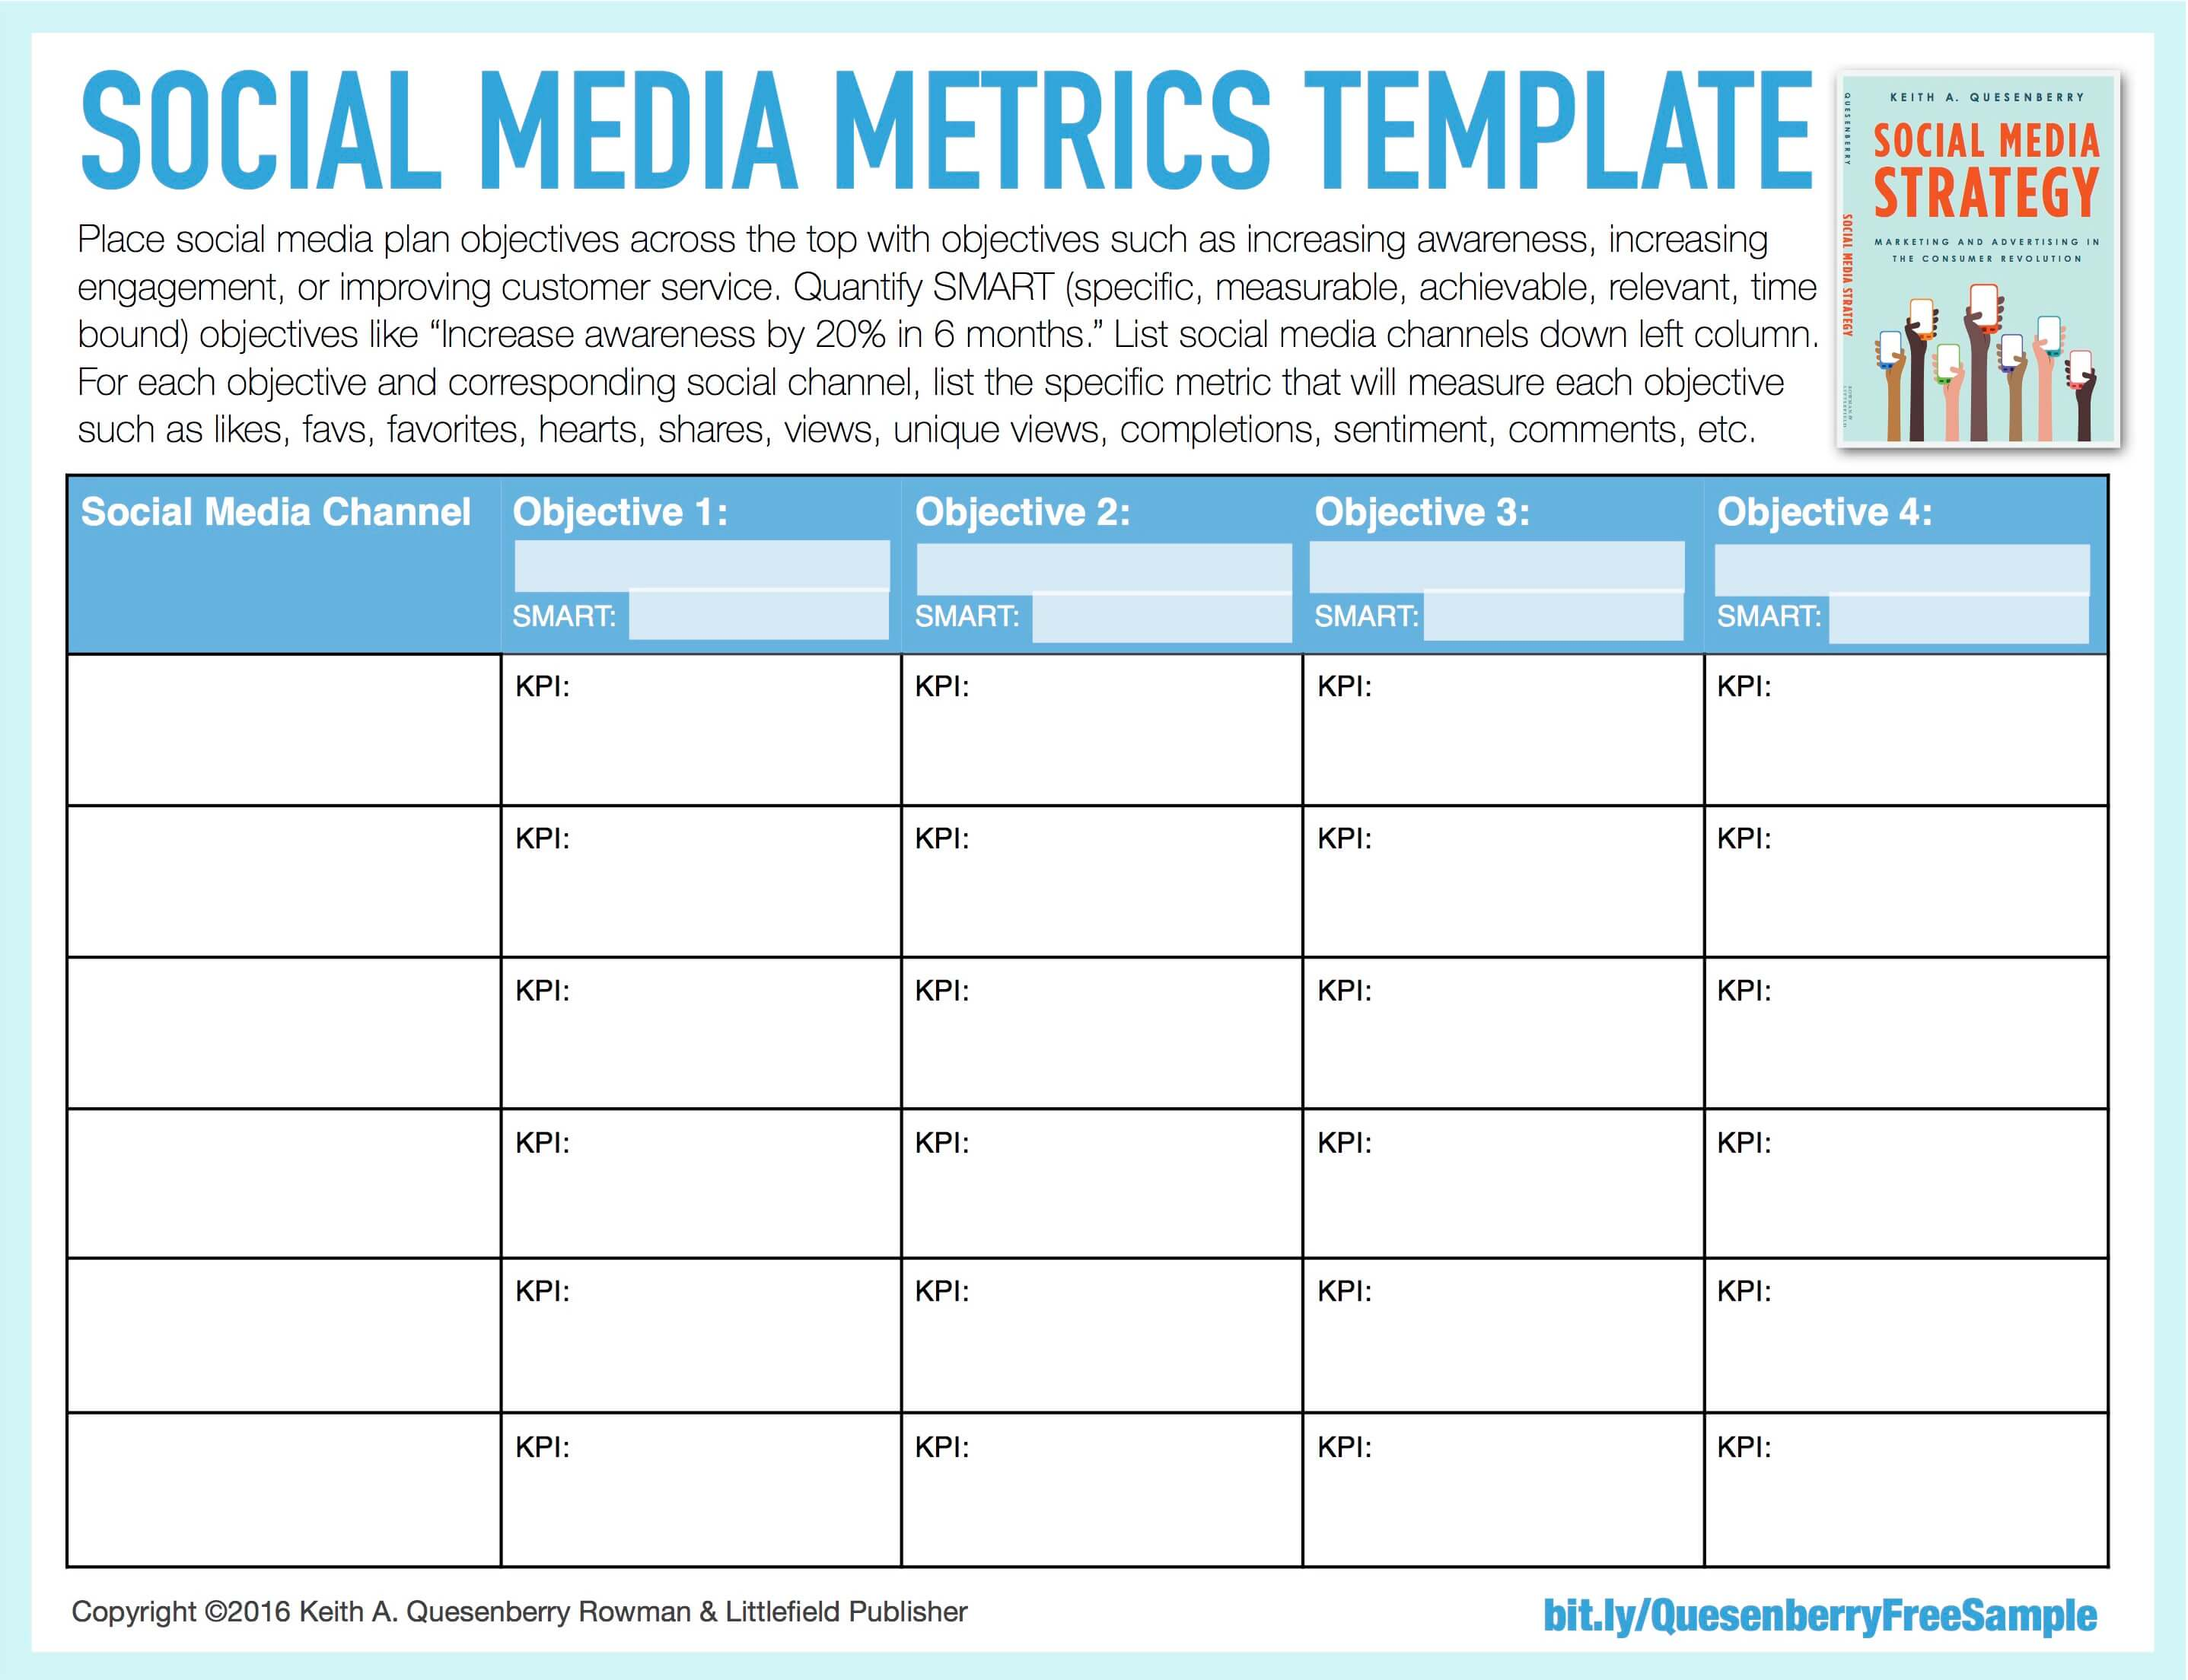 social media communication plan template - social media templates keith a quesenberry